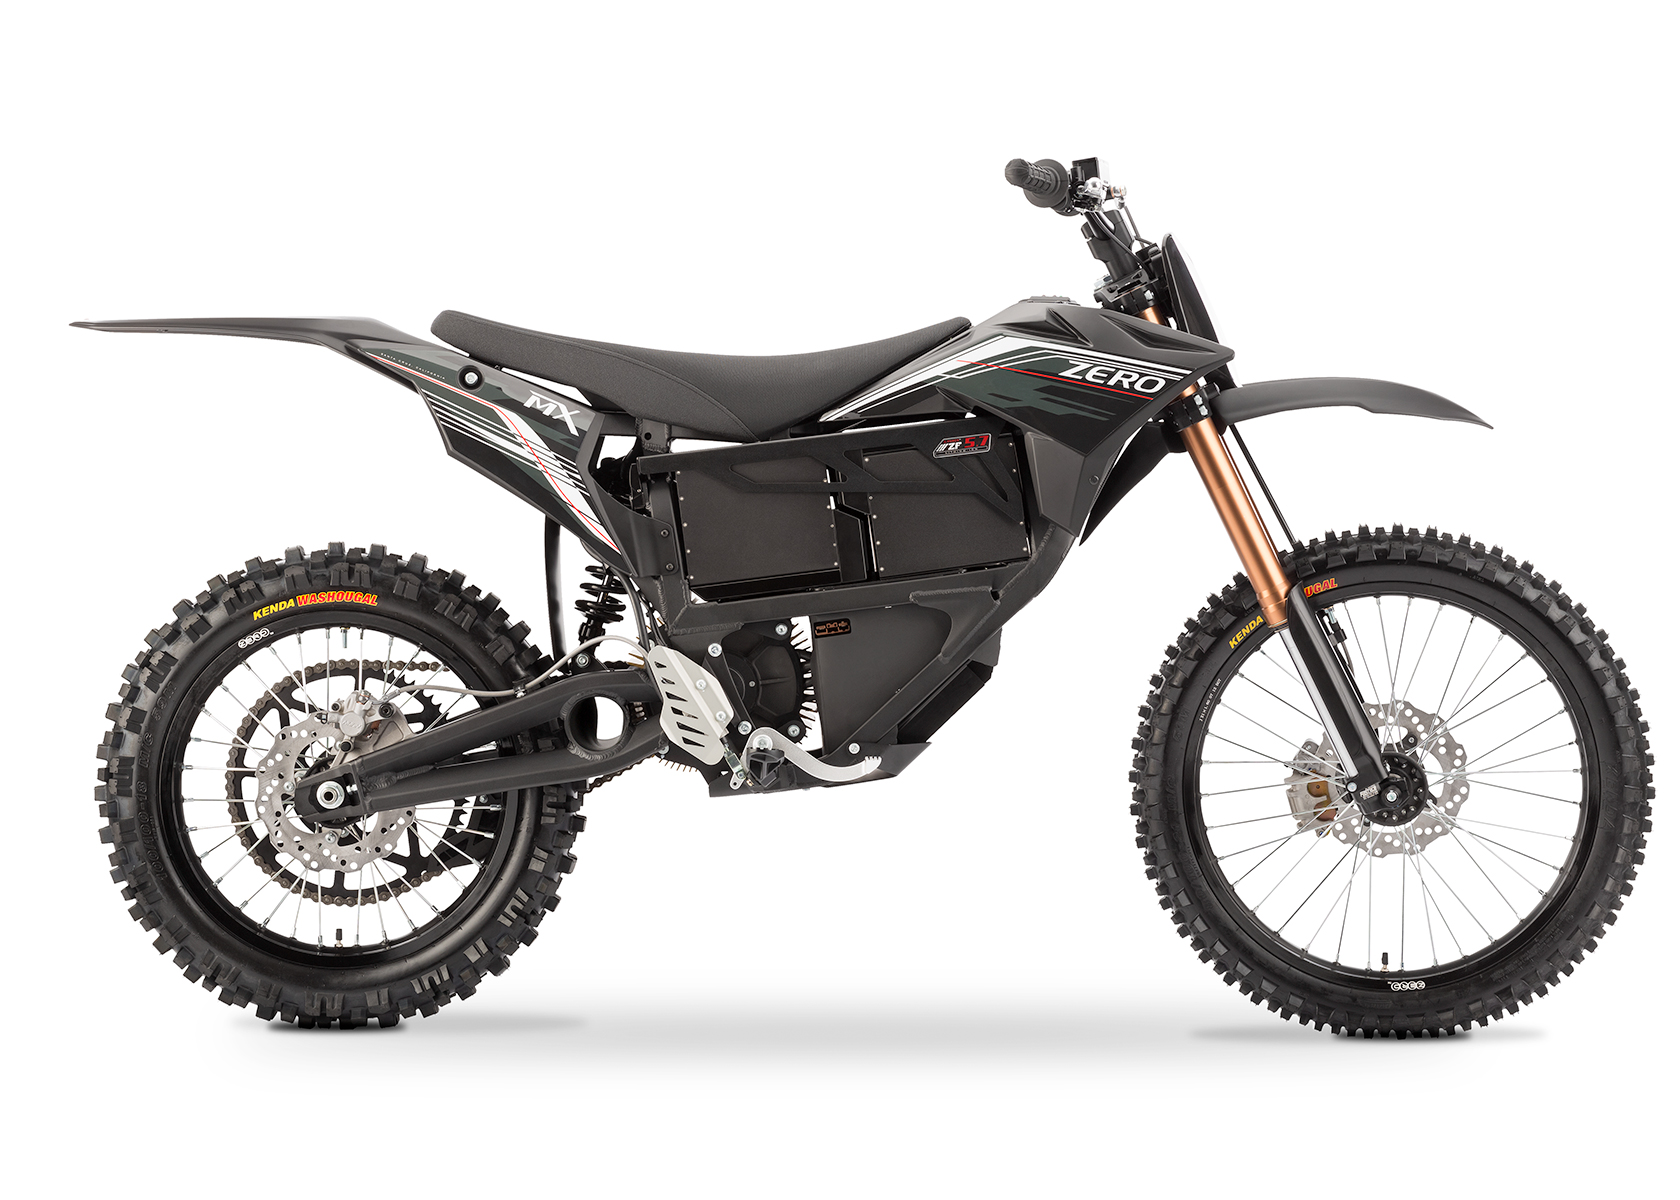 2013 Zero MX Electric Motorcycle: Black Profile Right, White Background